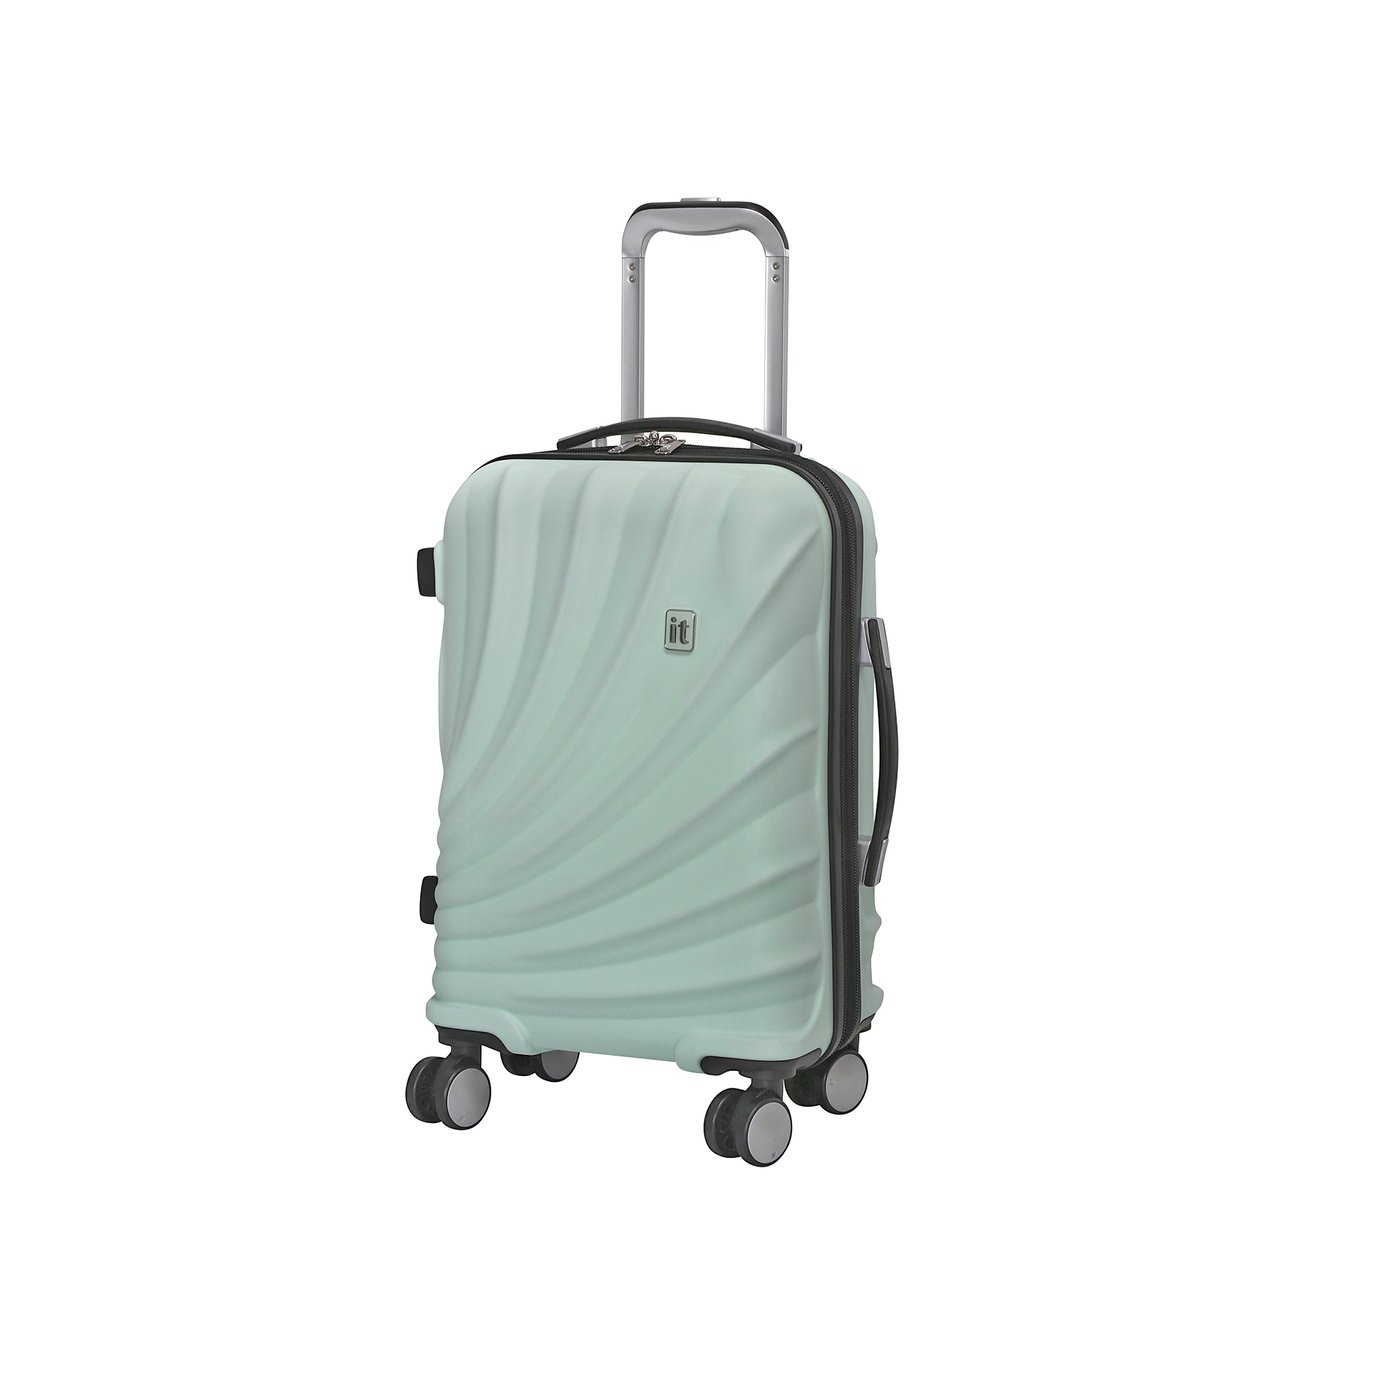 it Luggage Pagoda Expandable 8 Wheel Cabin Suitcase - Pastel